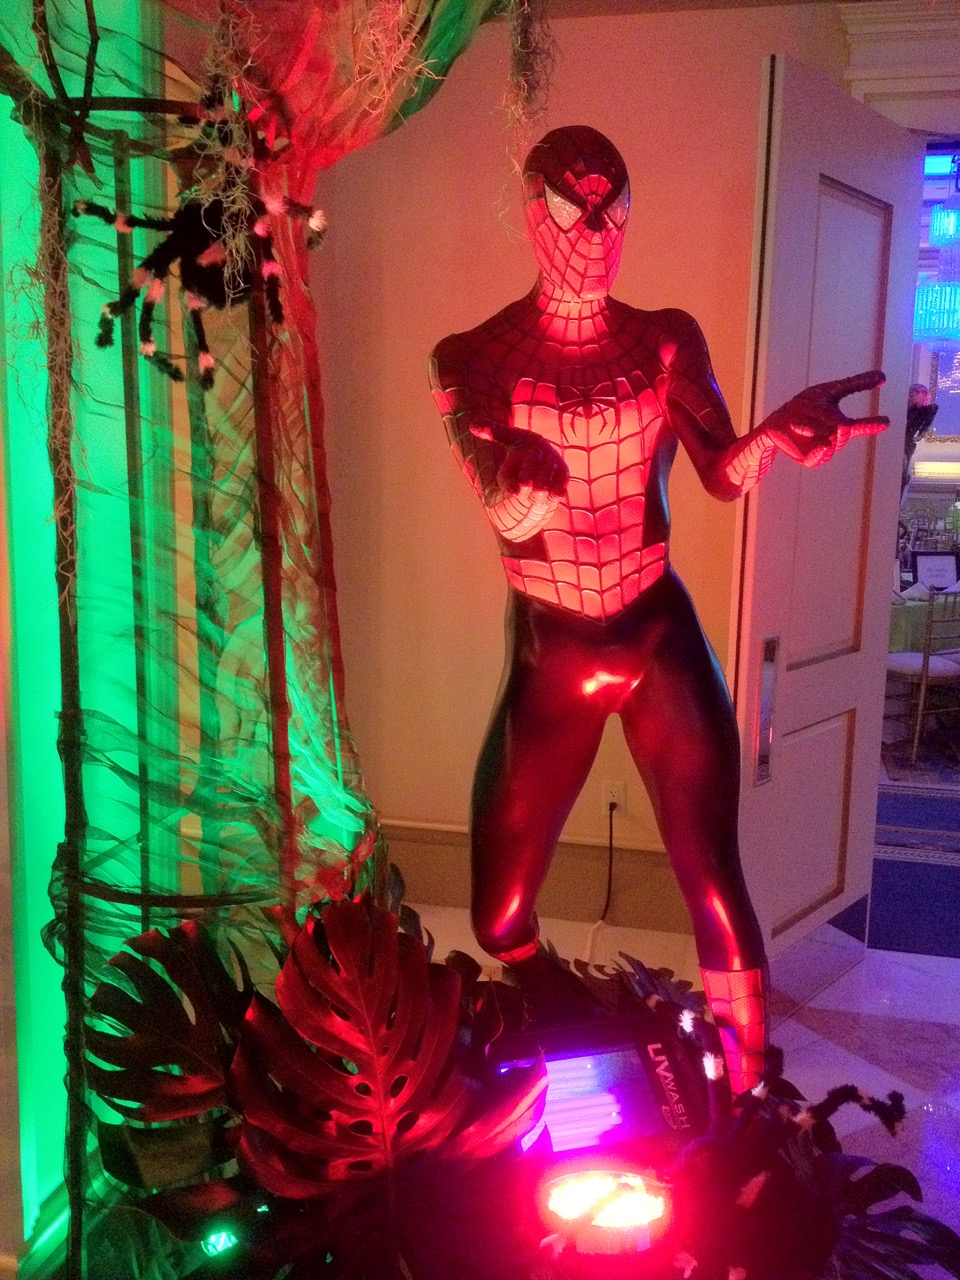 Halloween+Decor+Rentals+from+Eggsotic+Events+NJ+NYC+-+6.jpg